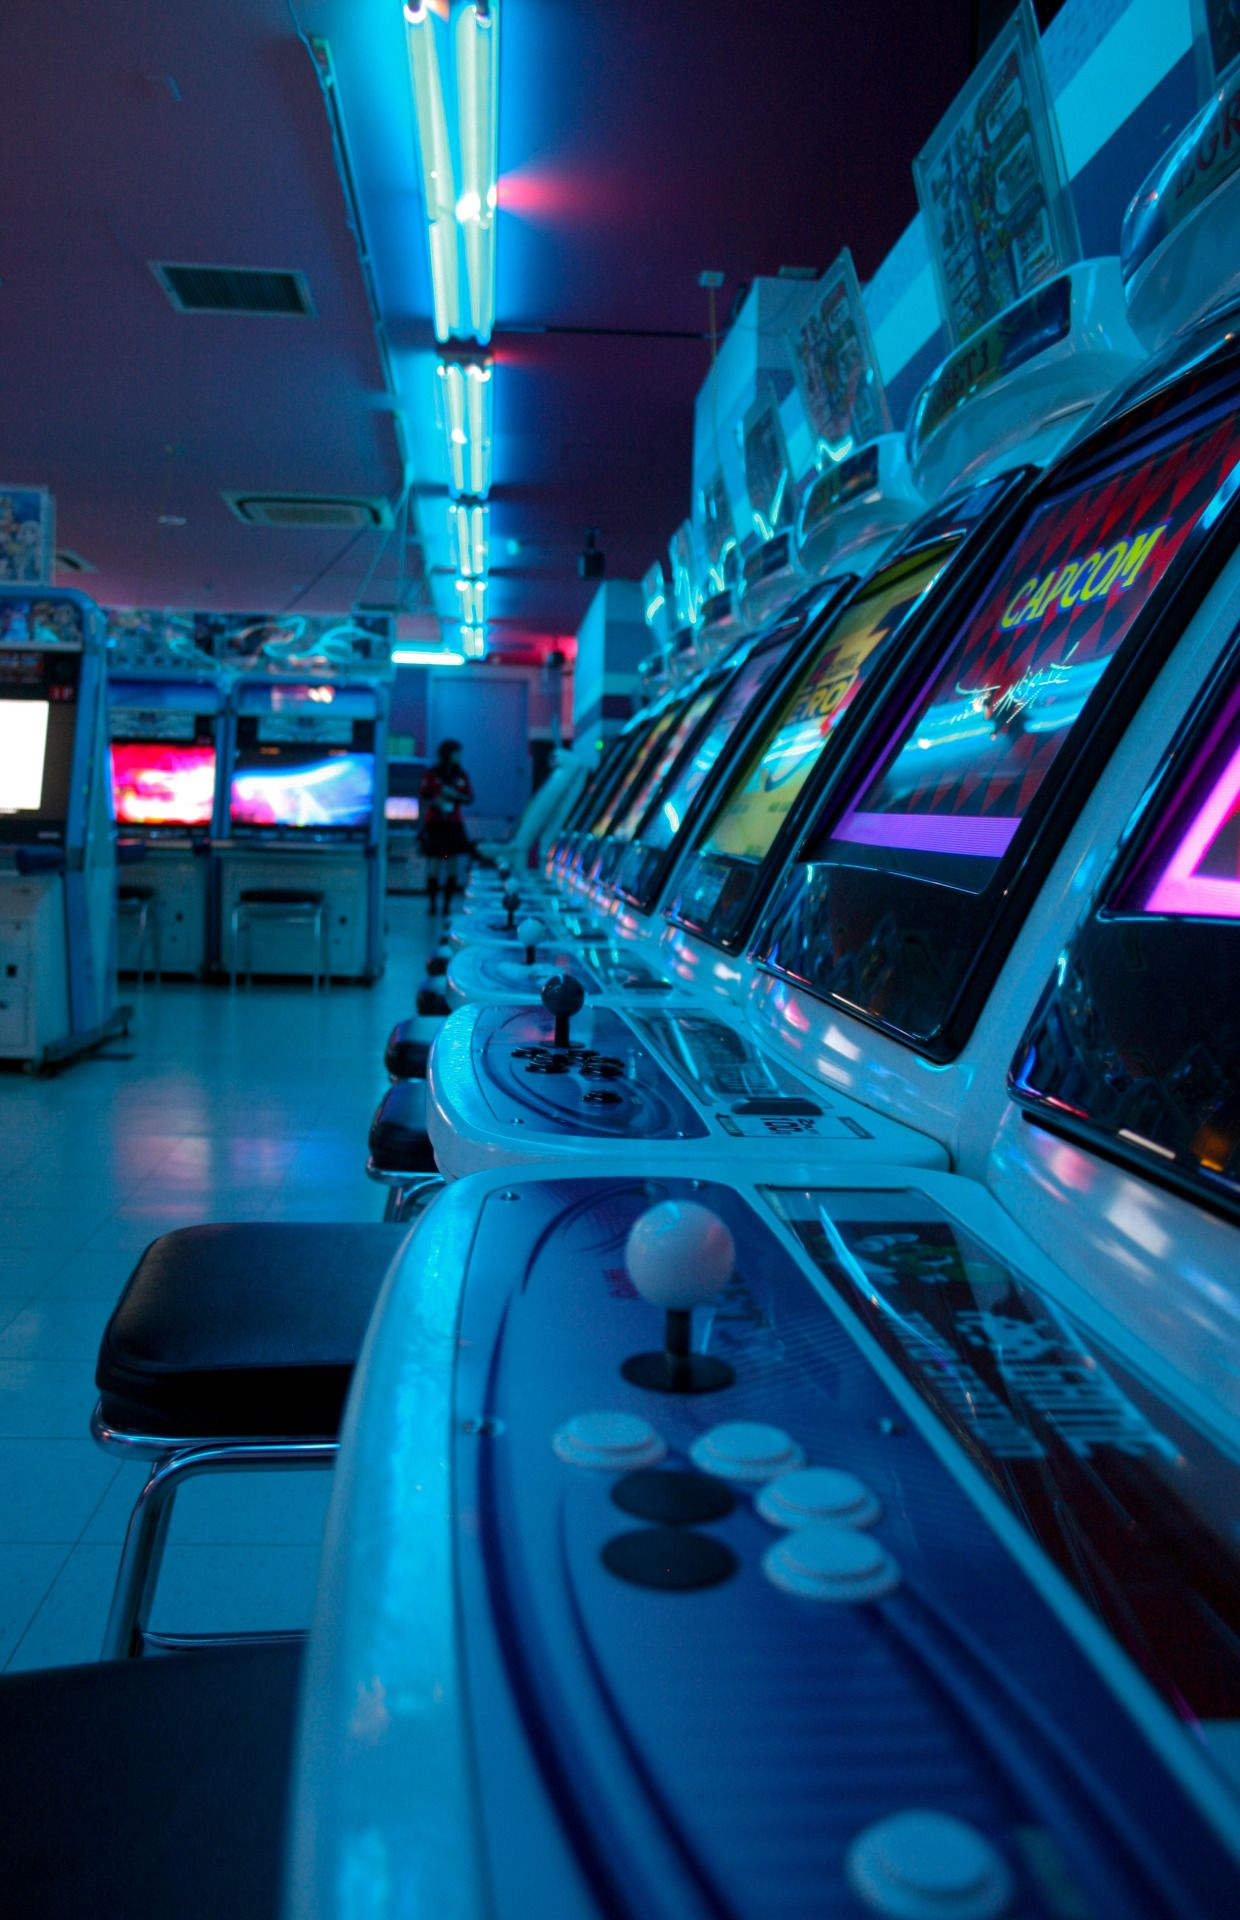 Arcade Aesthetic | Blue | Glow | aesthetic | photography ...